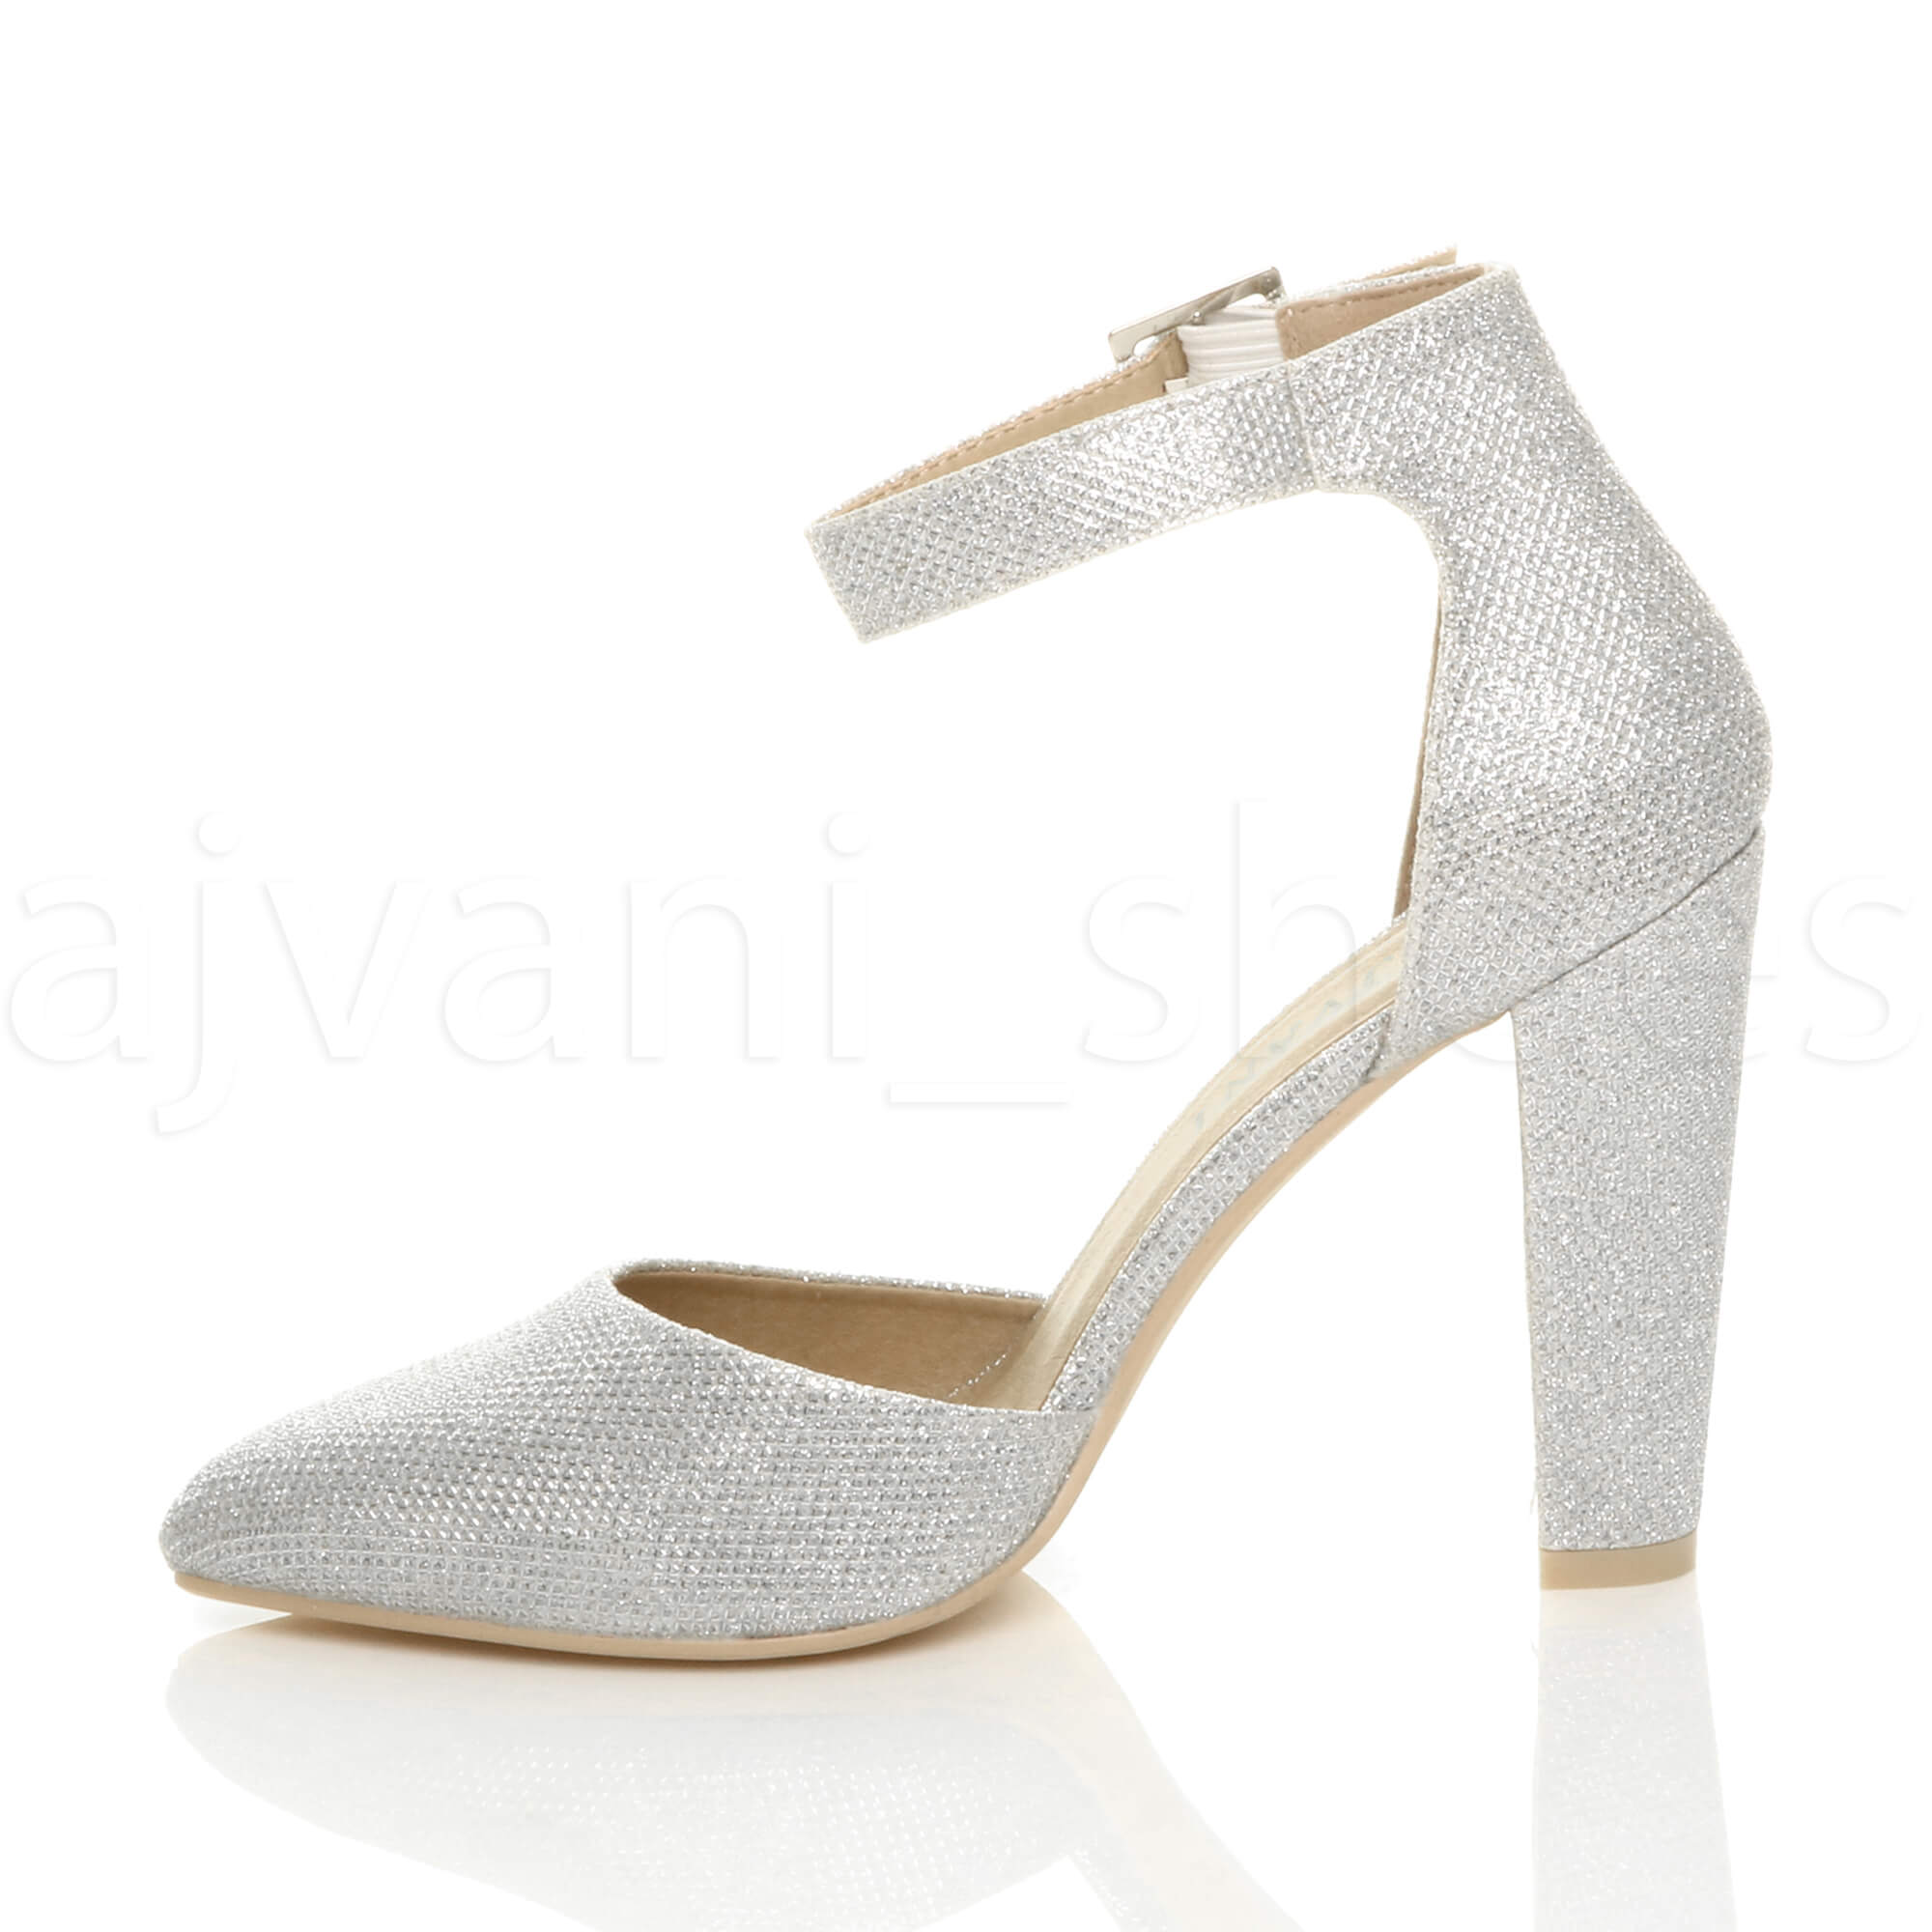 WOMENS-LADIES-HIGH-BLOCK-HEEL-ANKLE-STRAP-BUCKLE-POINTED-COURT-SHOES-SIZE thumbnail 179